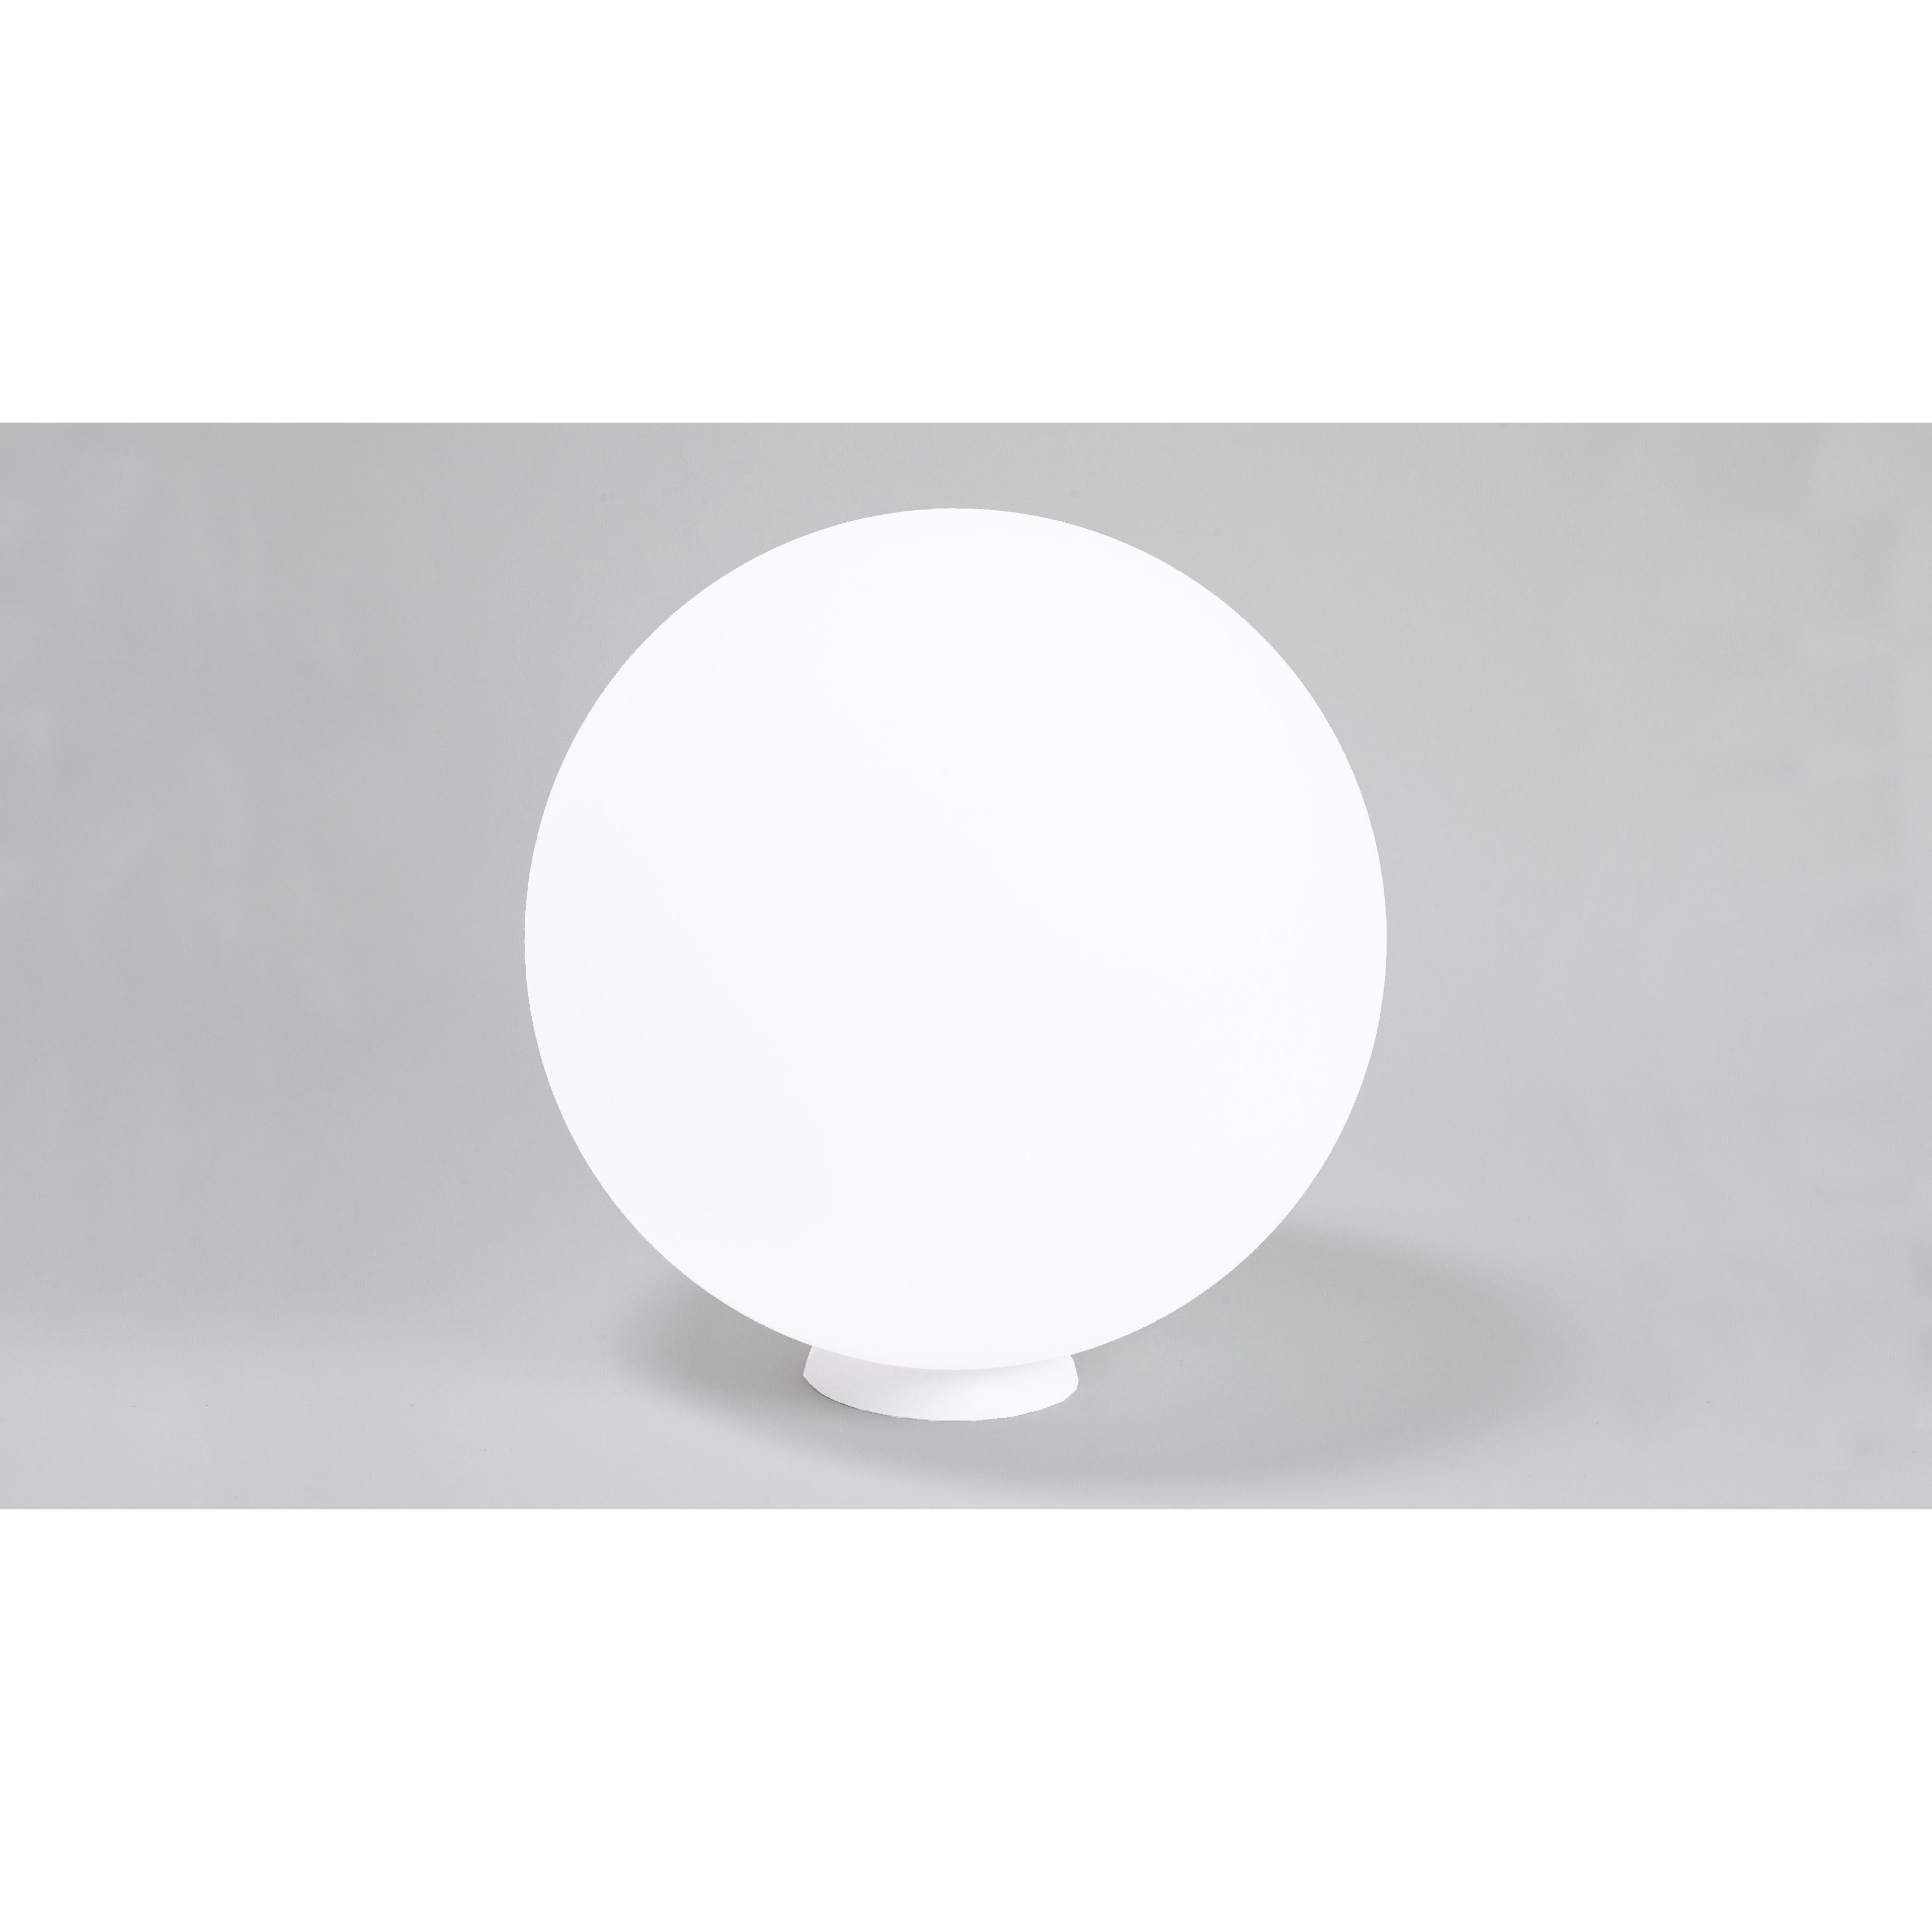 Boule Lumineuse Led Jardin Boule Lumineuse Led Perfect Boule Led Patio With Boule